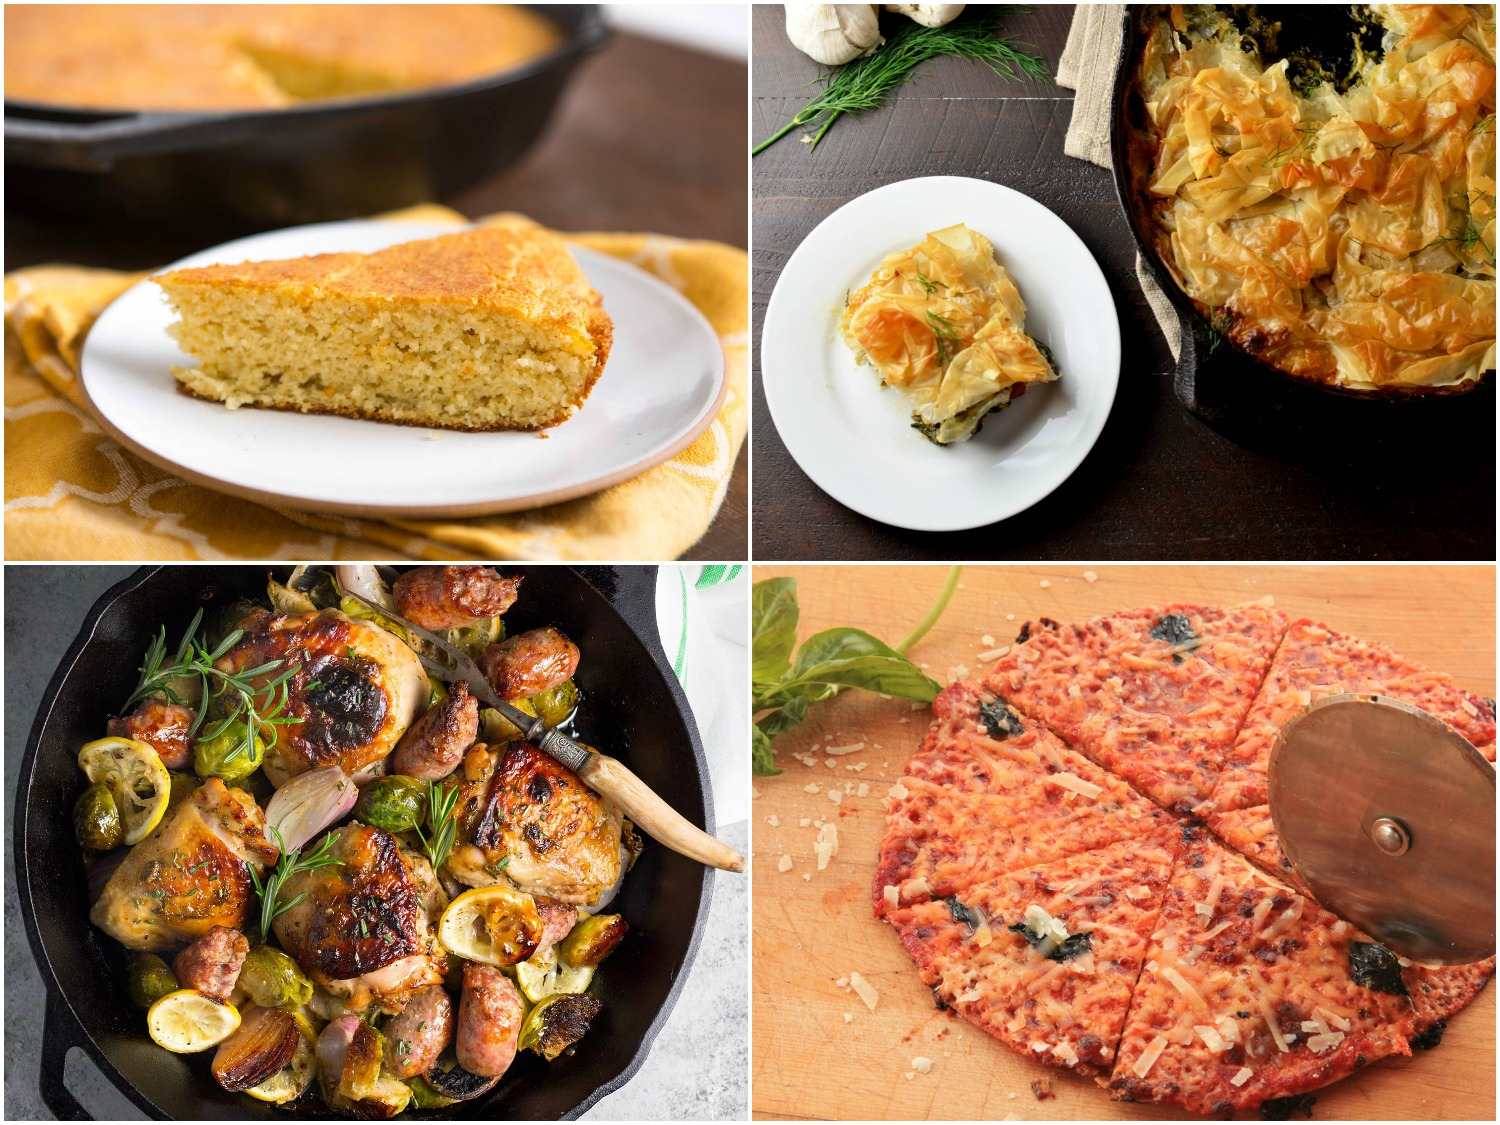 Photo collage of cast iron skillet recipes: Southern-style cornbread, chicken skillet spanakopita, roast chicken with Brussels sprouts and sausage, bar-style tortilla pizza